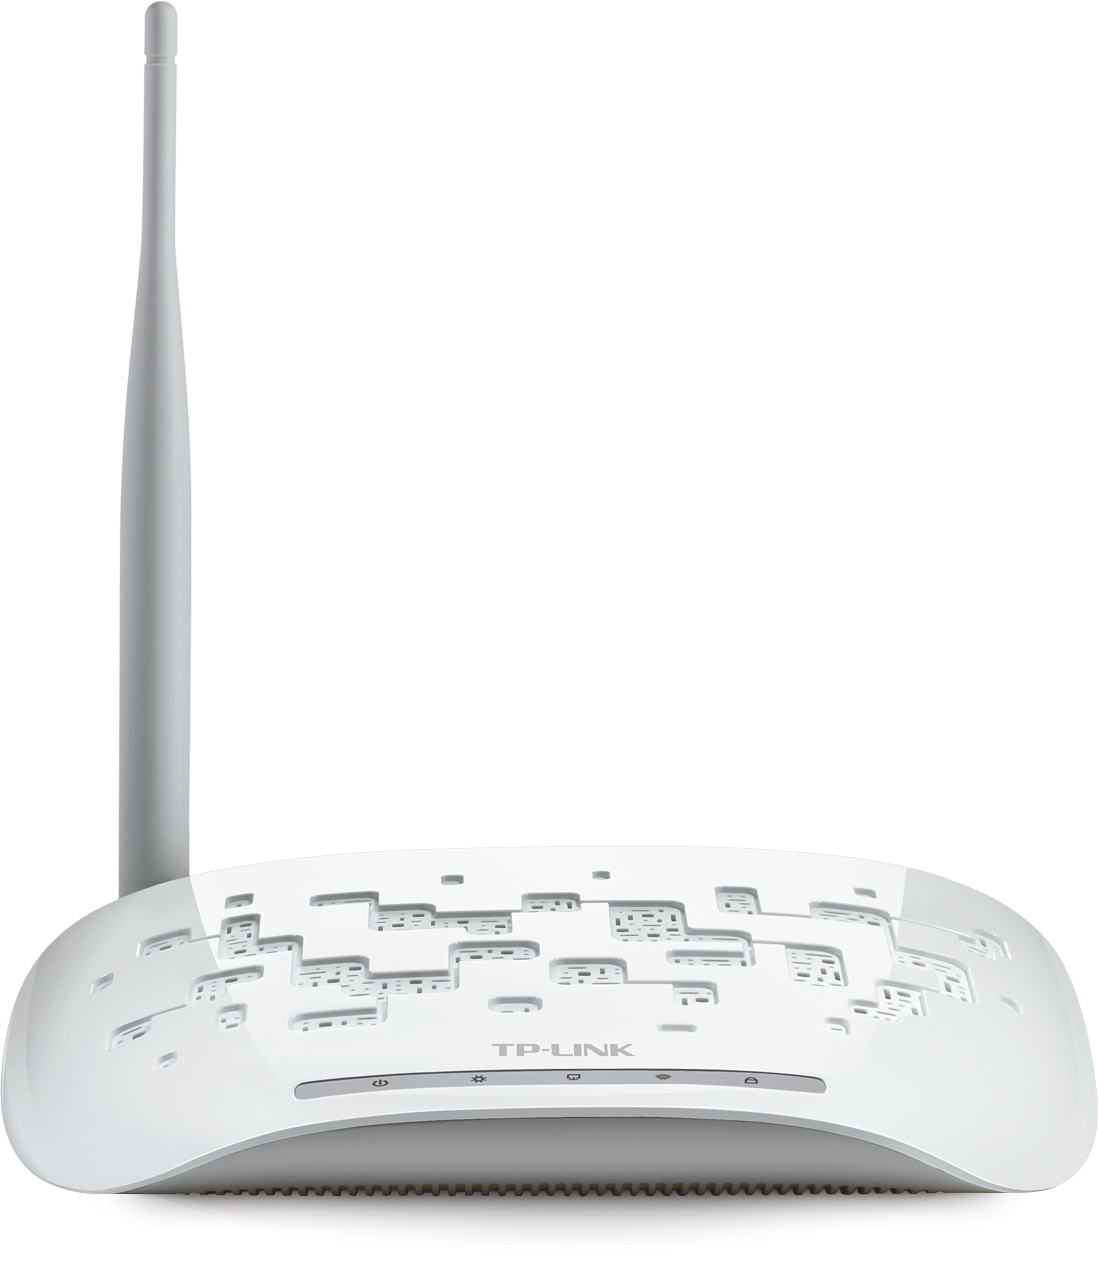 TP-LINK TL-WA701ND 150Mbit/s Power over Ethernet (PoE) White WLAN access point